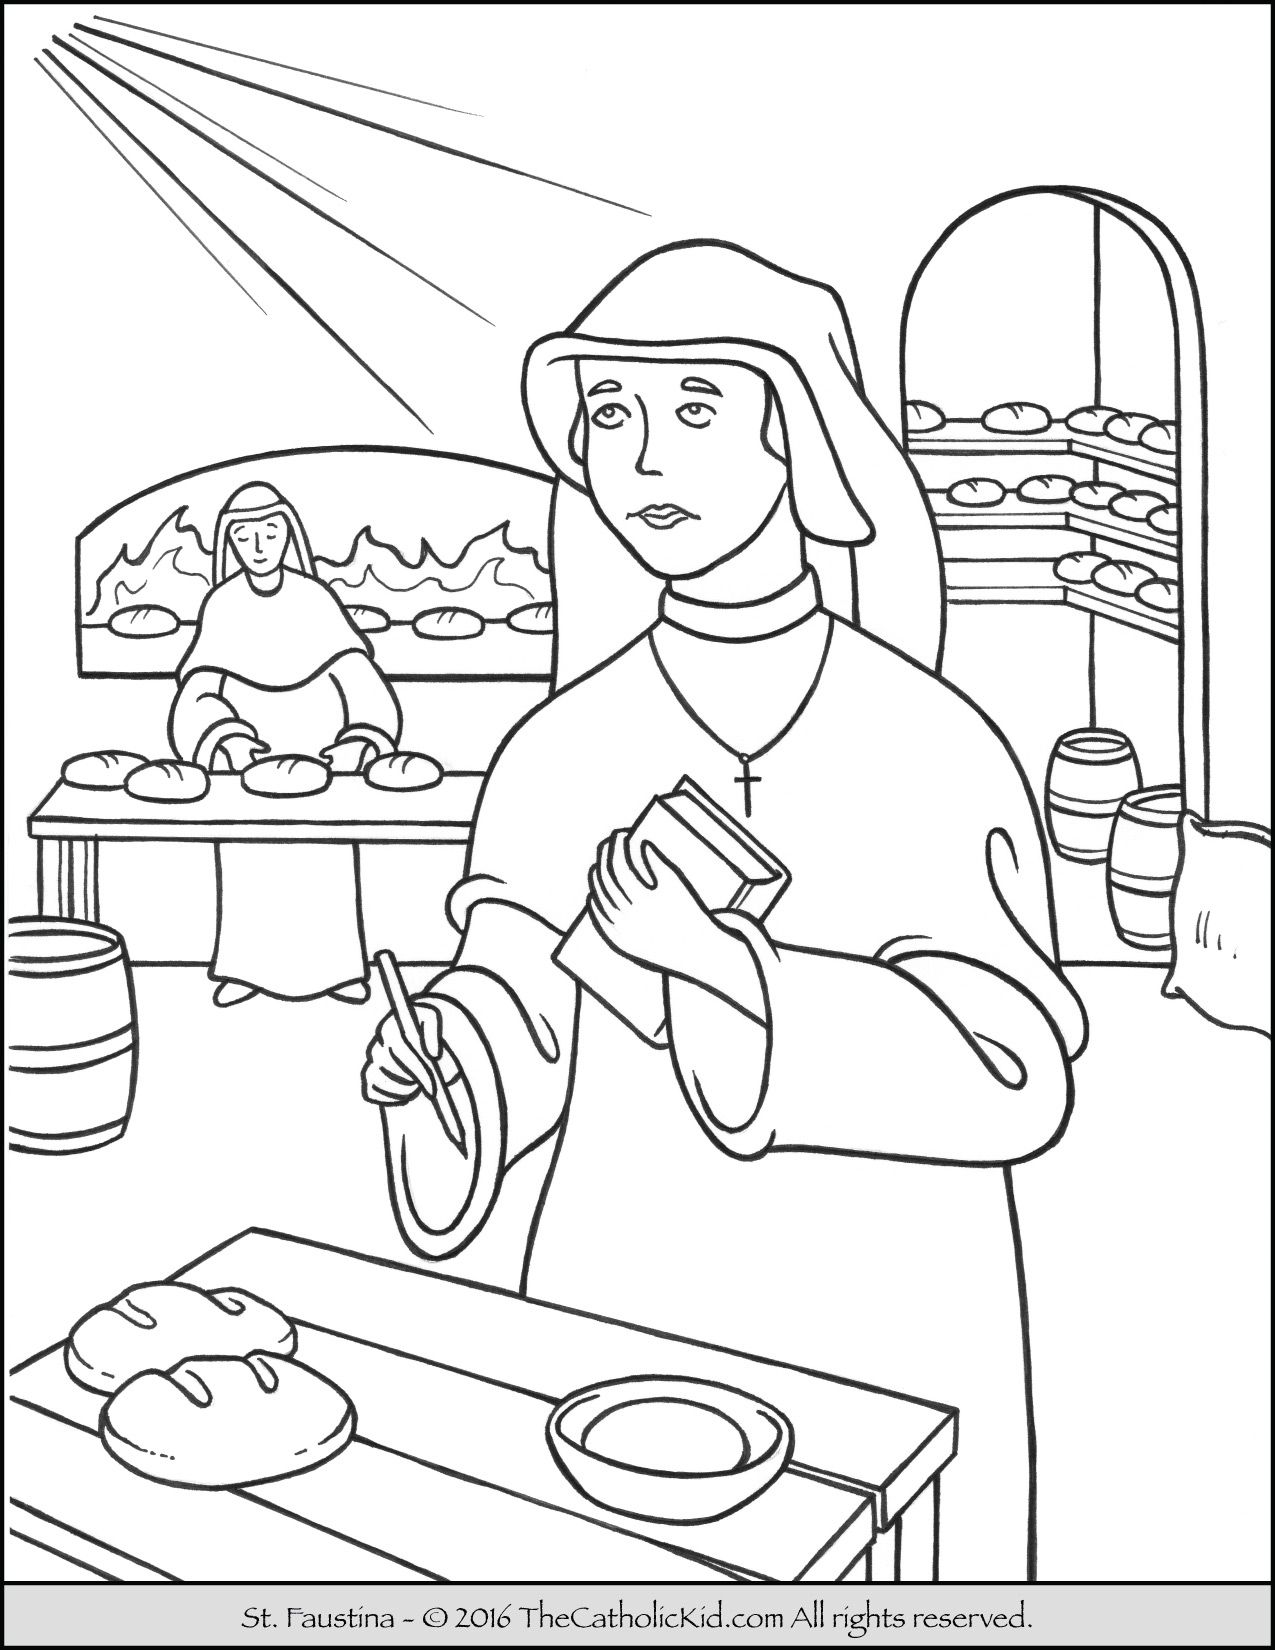 Saint Faustina Coloring Page The Catholic Kid Catholic